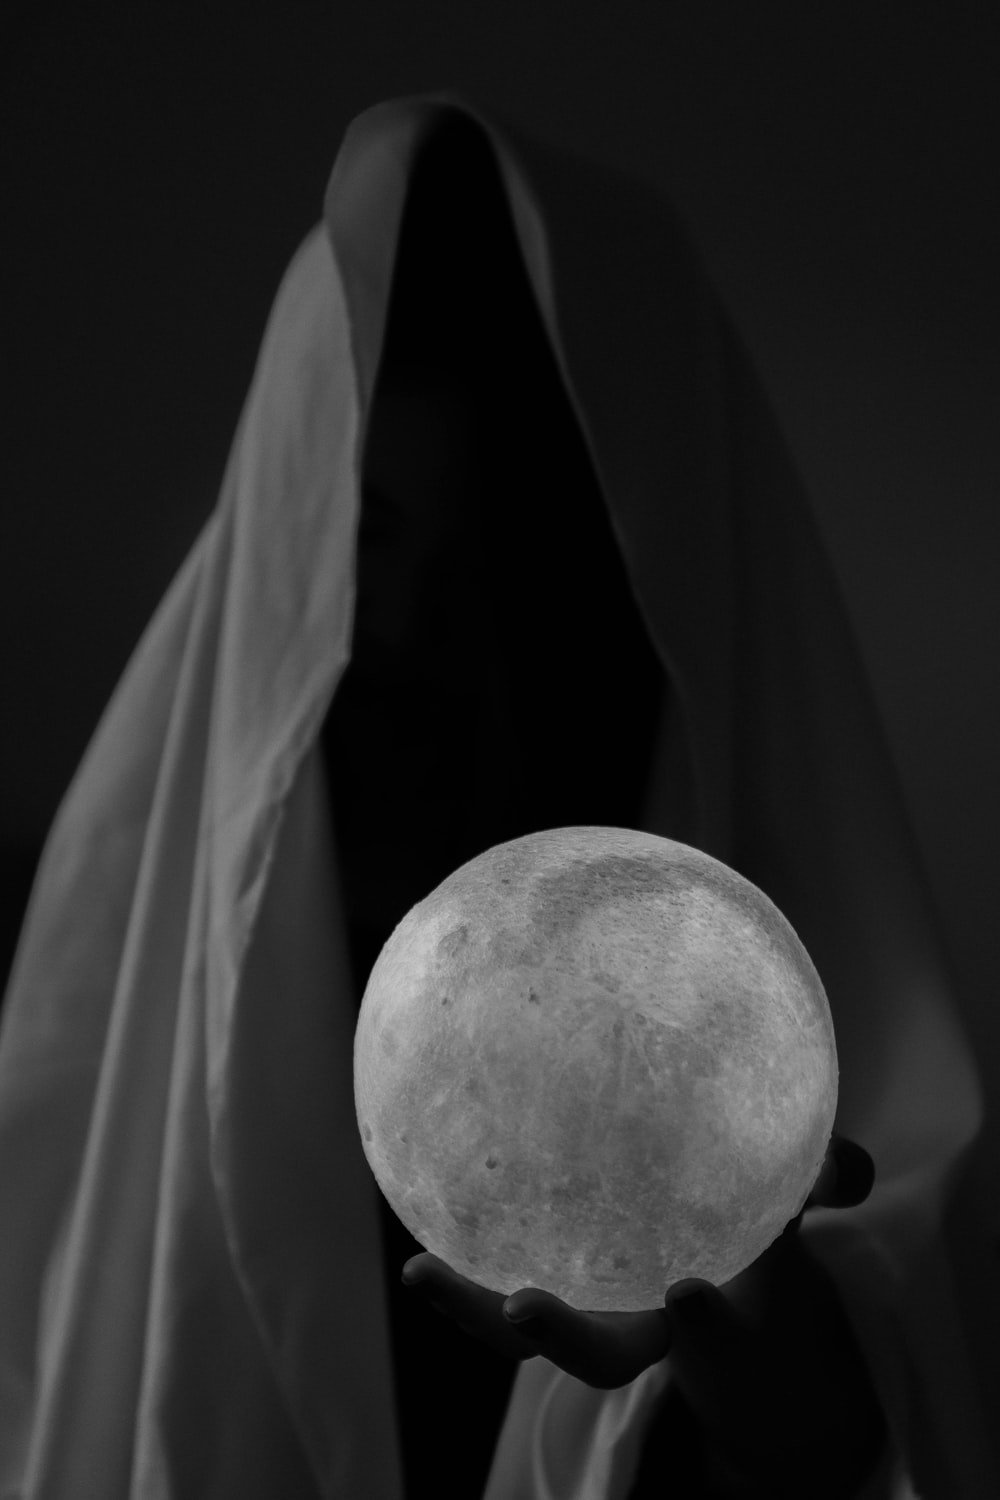 grayscale photo of person holding ball